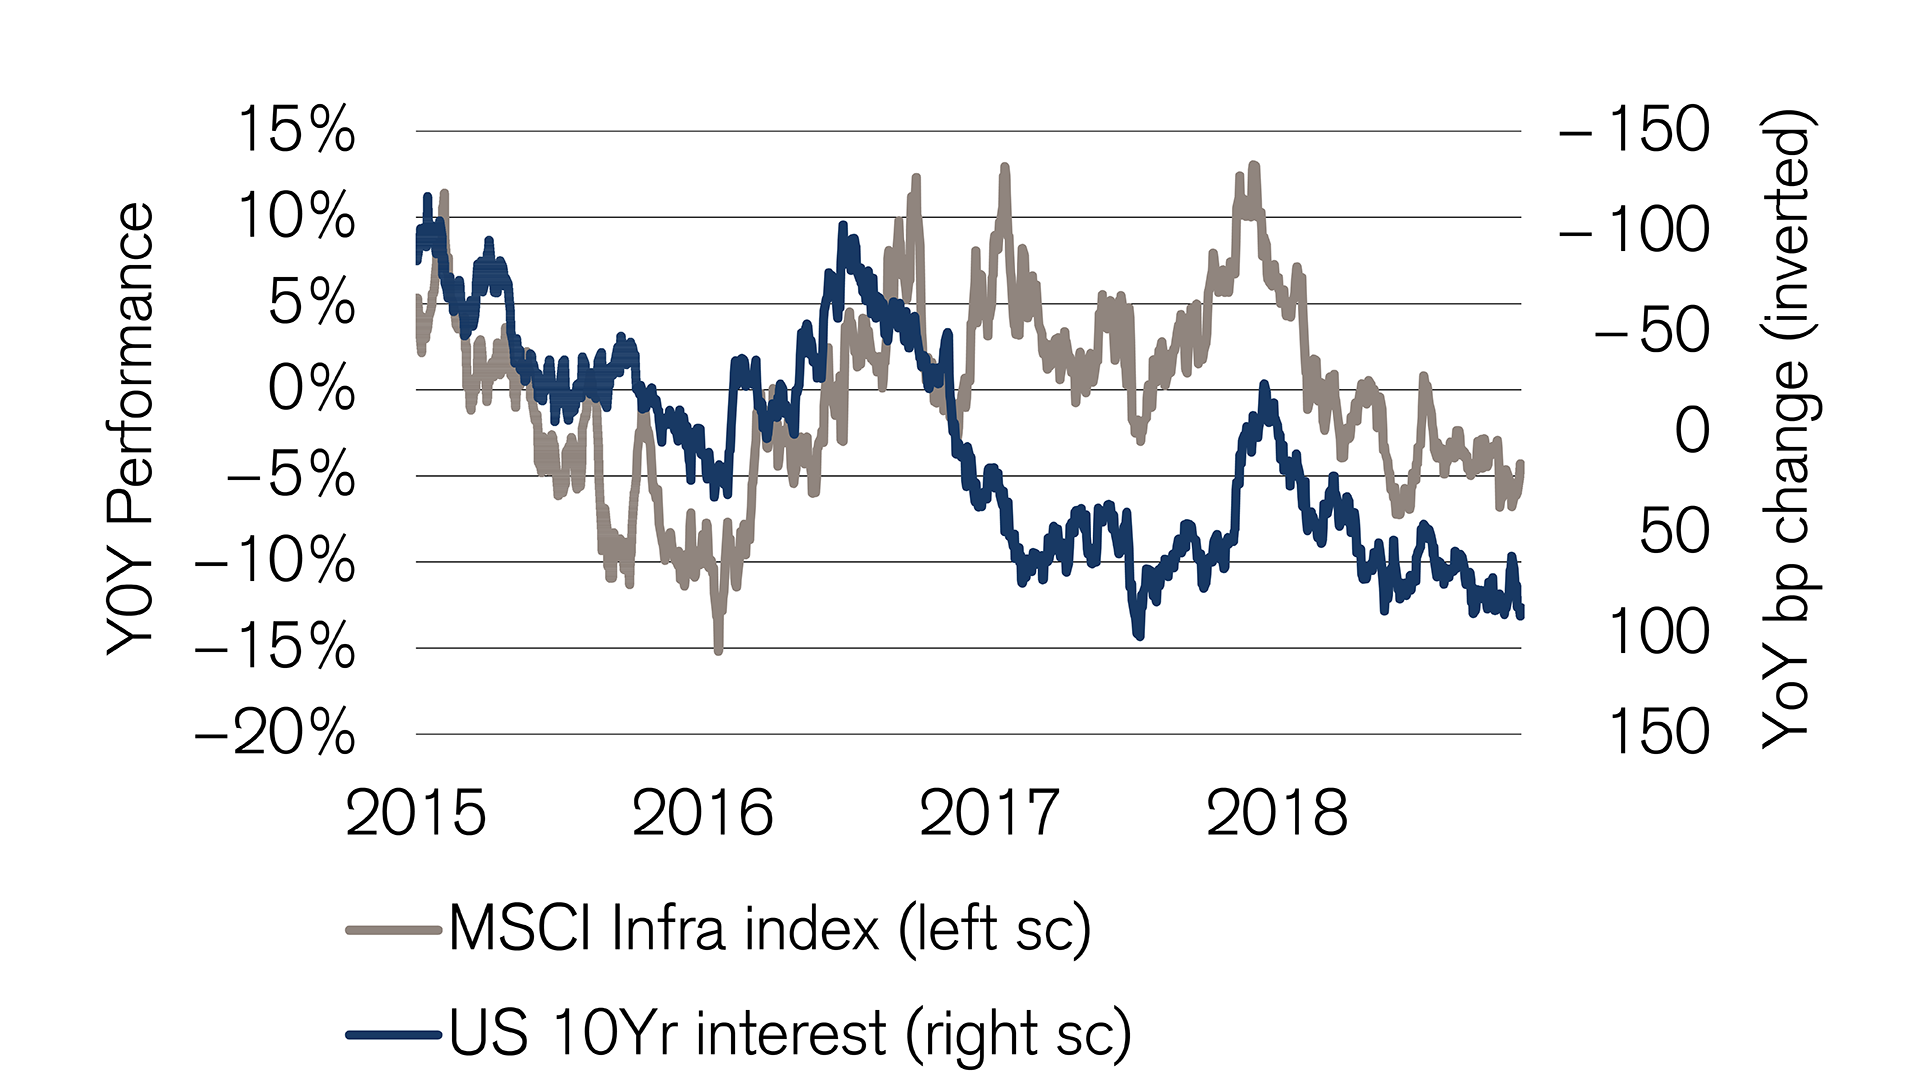 msci-infrastructure-index-outperforms-ten-year-us-interest-rates